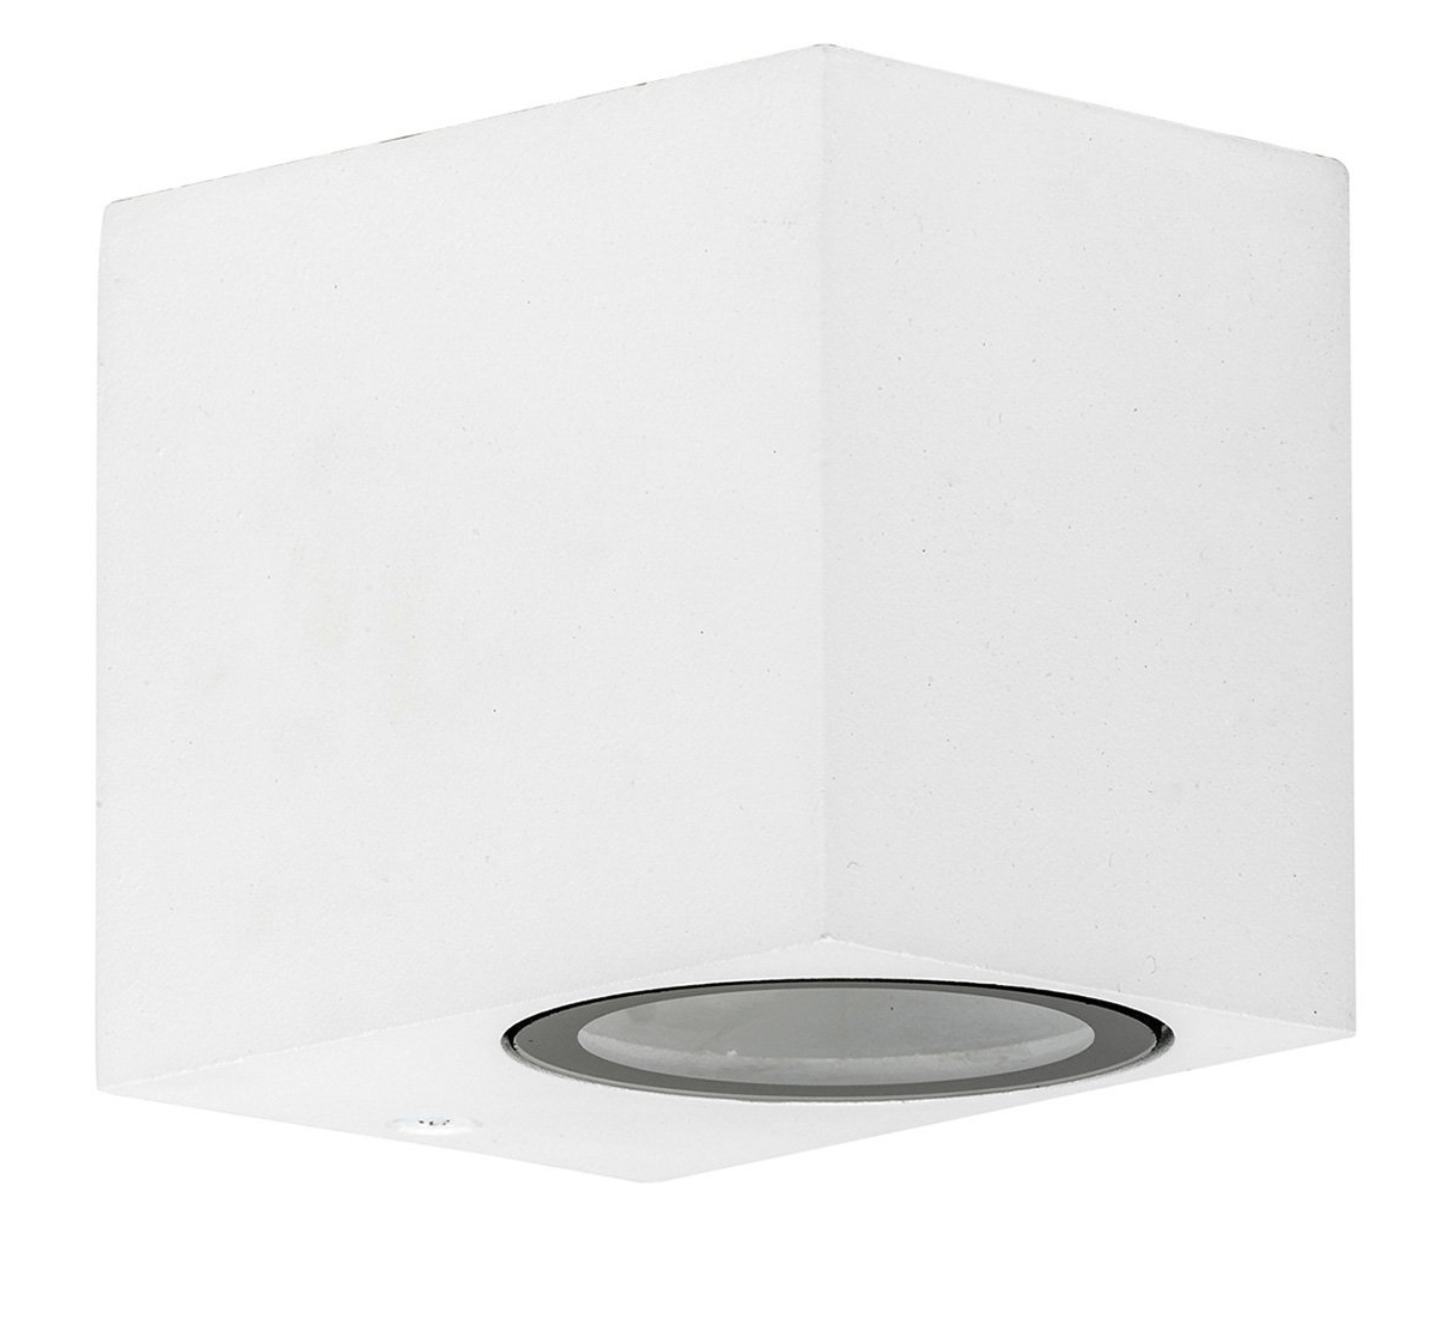 Exterior Wall Light ACCORD - Fixed Down Wall Light